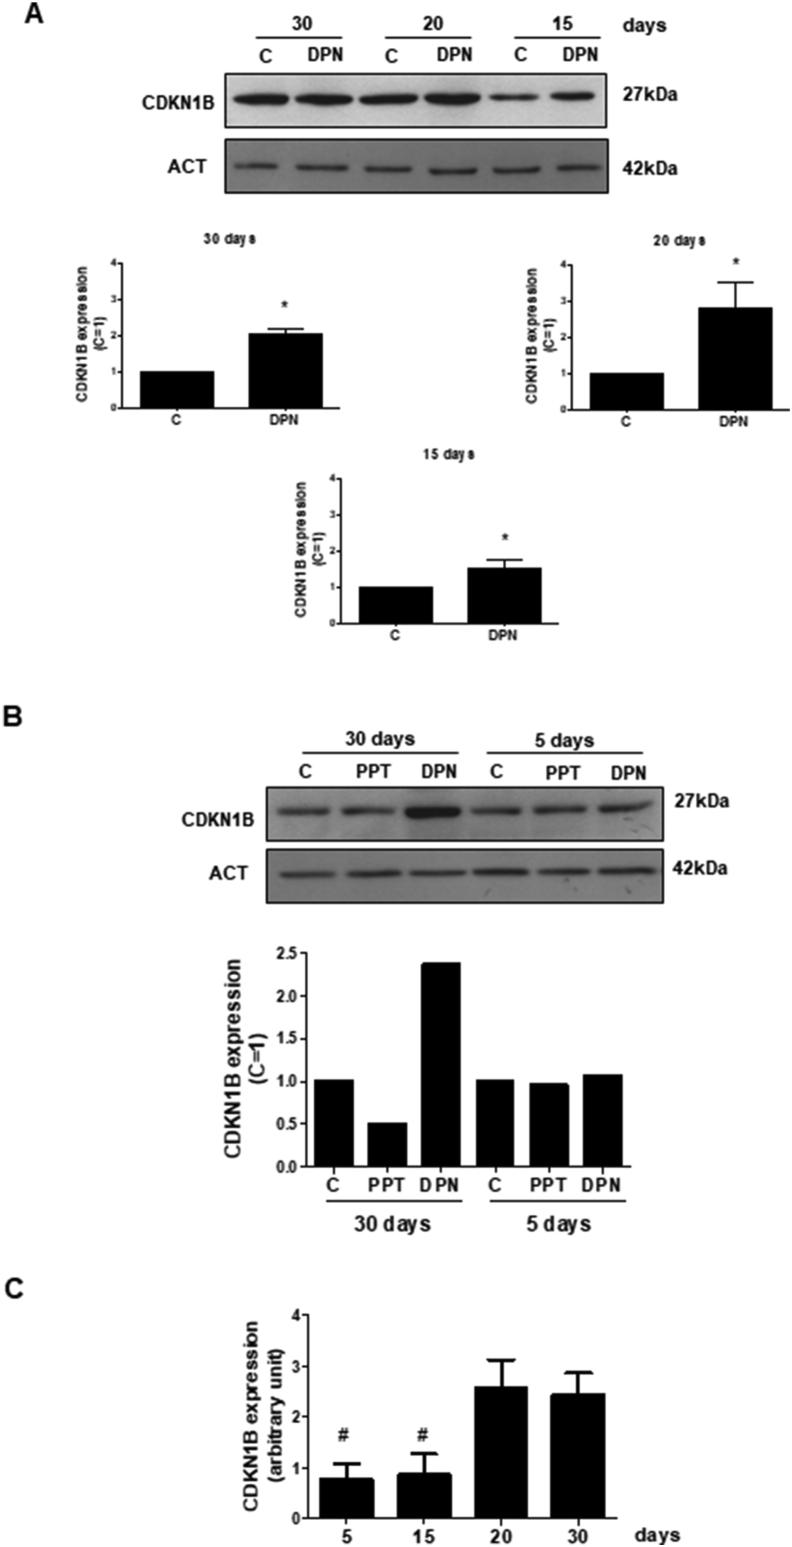 Effects of ESR1-selective agonist PPT and ESR2-selective agonist DPN on the expression of CDKN1B in the Sertoli cells from 5-, 15-, 20- and 30-day-old rats. A. Sertoli cells from 30-, 20- and 15-day-old rats were incubated in the absence (C, control) and presence of DPN (10 nM) for 24 h. The relative positions of CDKN1B (top panel) and ACT (bottom panel) proteins are shown at the right. The data shown are representative of four independent experiments (top and bottom panels). See, full image in Supplemental Fig S3. Bars represent the densitometric analysis of four independent experiments. Results were normalized to ACT expression in each sample and plotted (mean ± SEM) in relation to control (C = 1). ∗Significantly different from control ( P